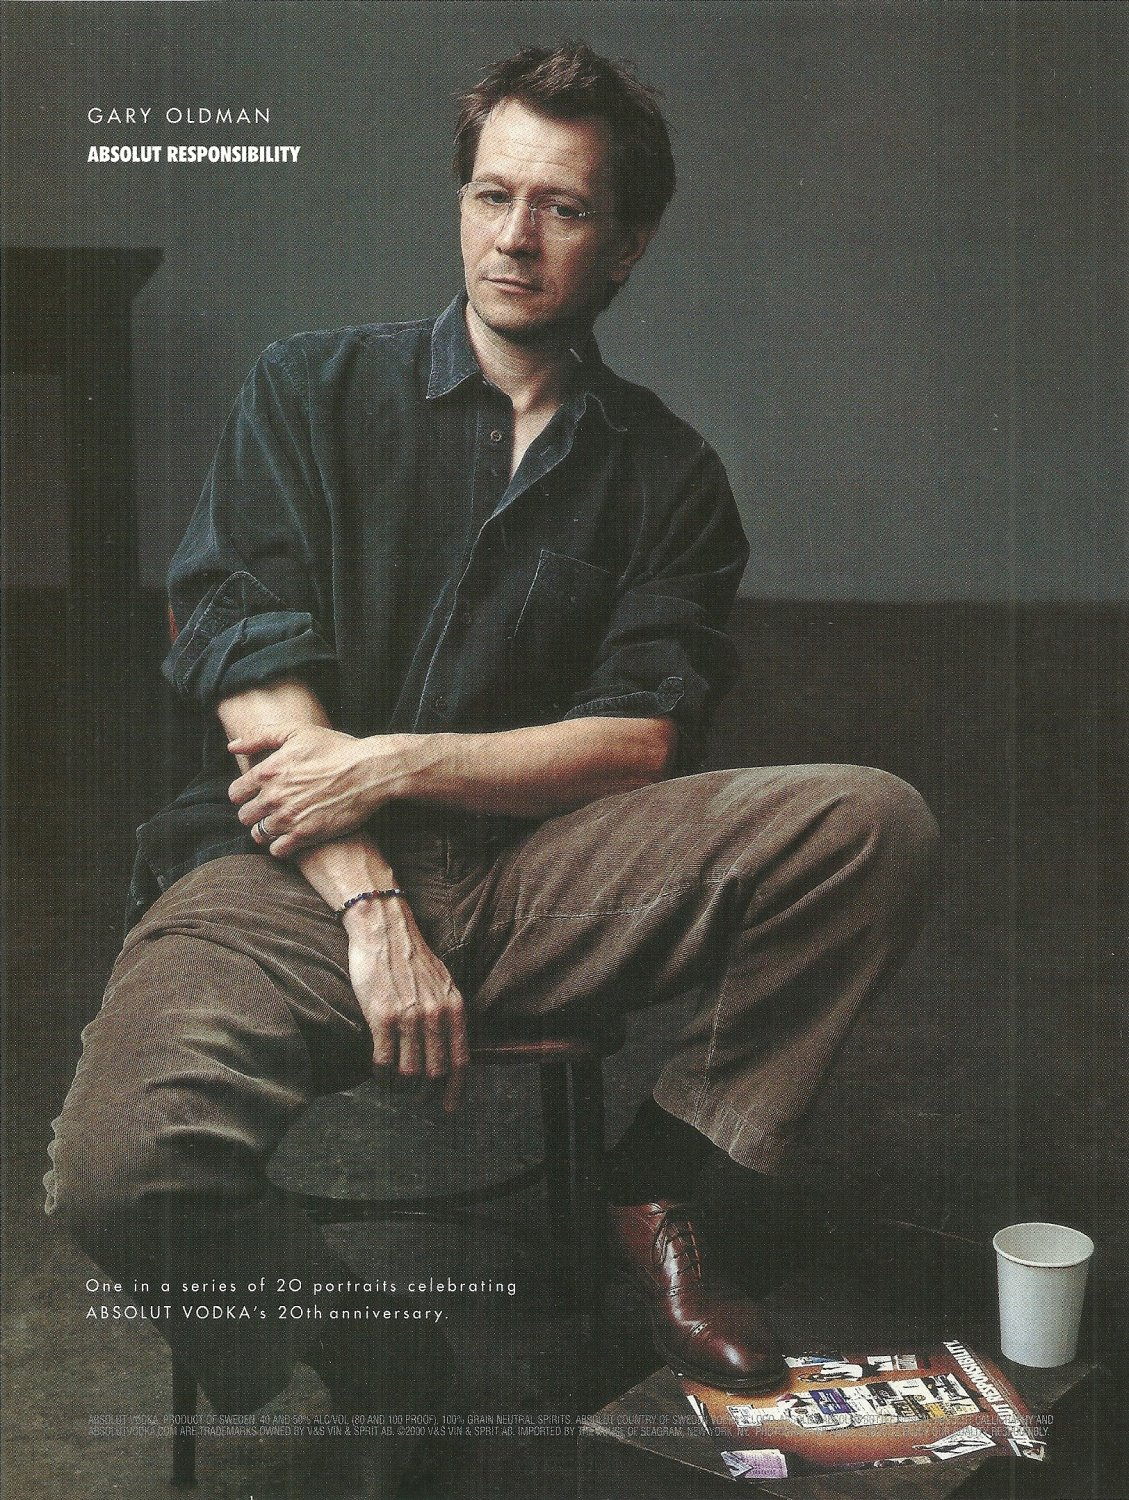 ABSOLUT RESPONSIBILITY Vodka Magazine Ad Featuring Gary Oldman NOT COMMON!